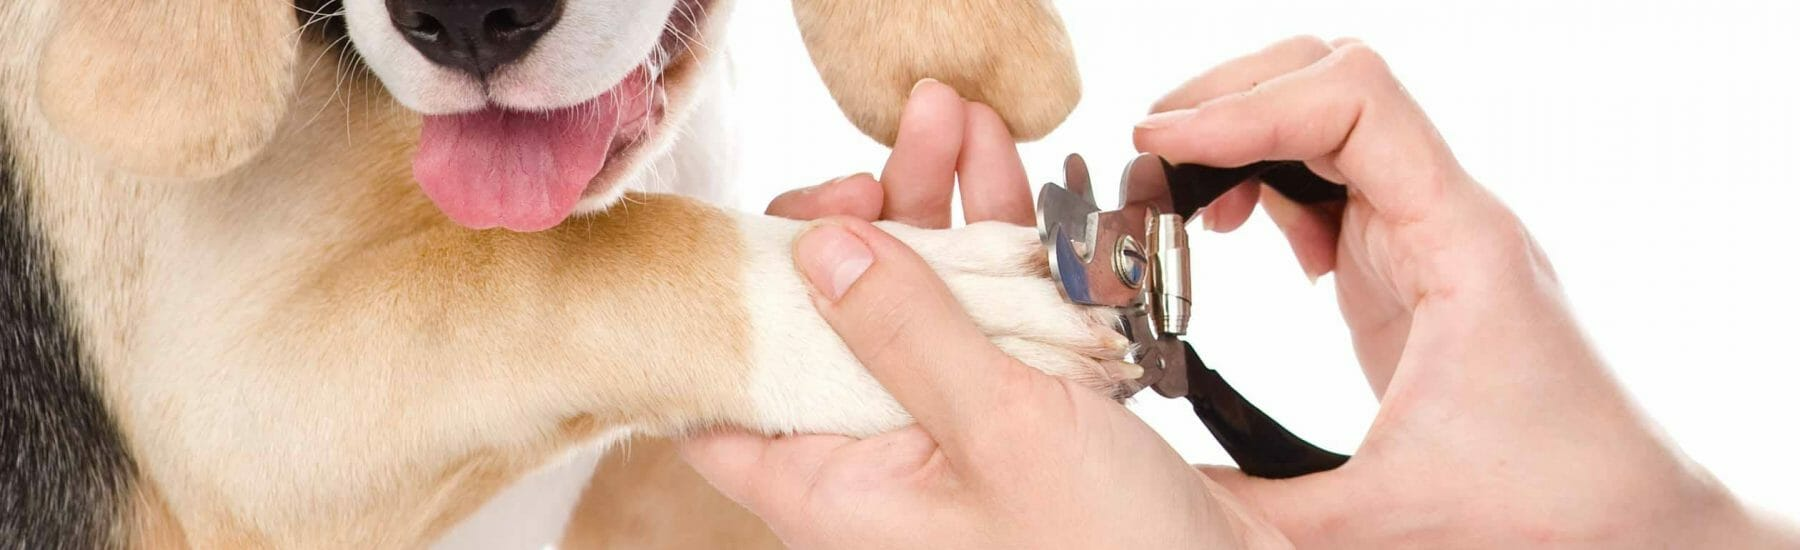 Hands of a person trimming the nails of a dog